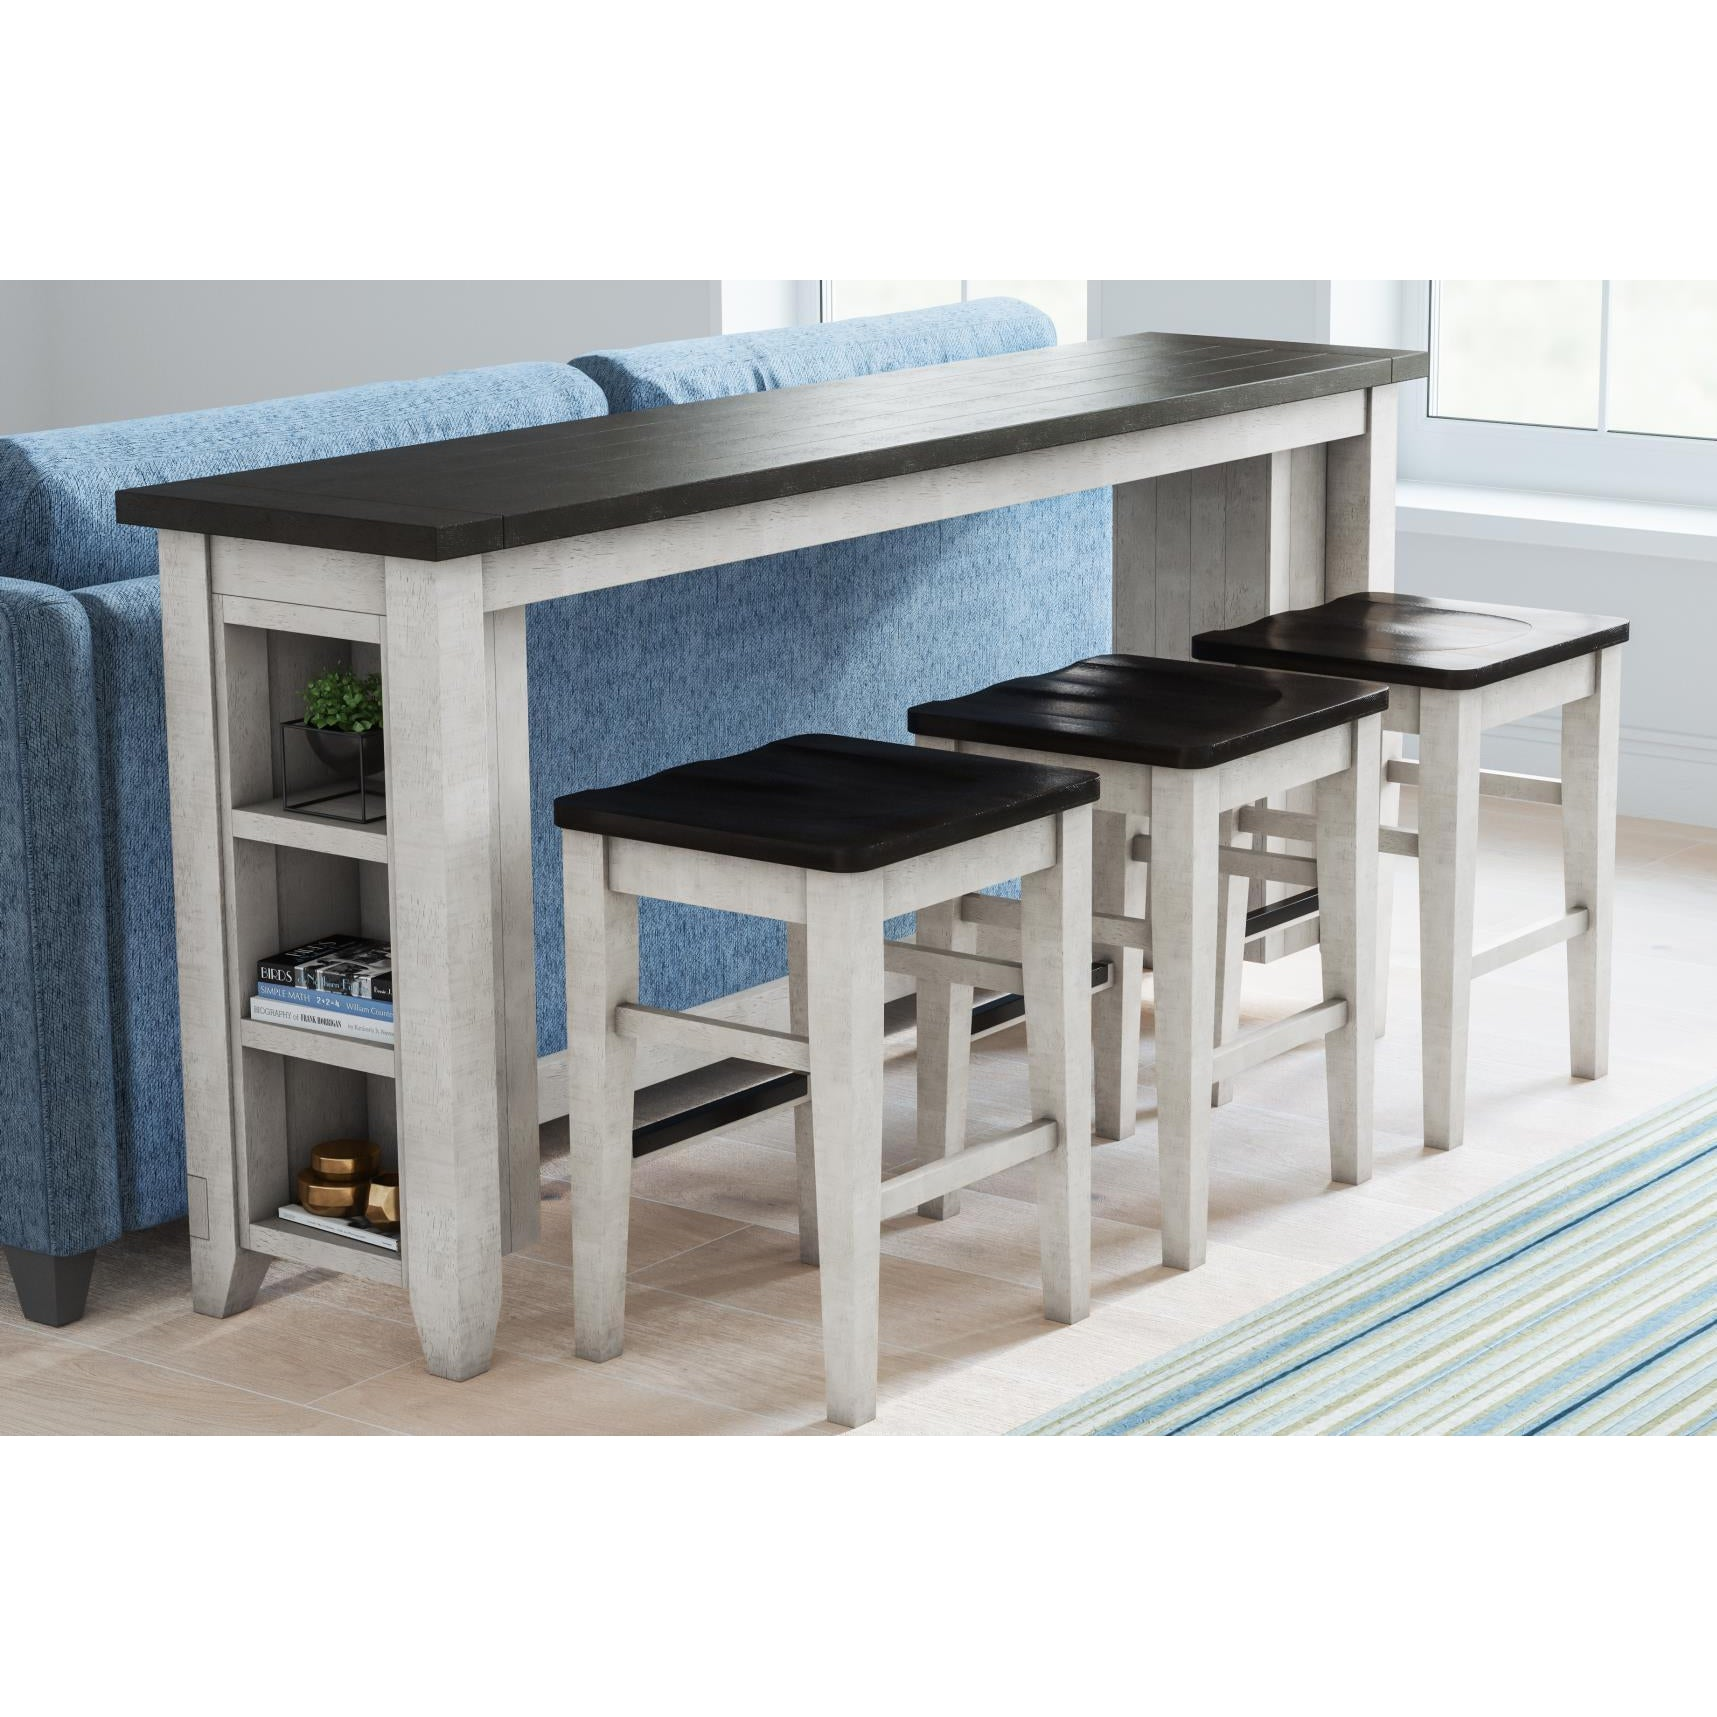 Urban Loft Console Table + 3 Stools Set